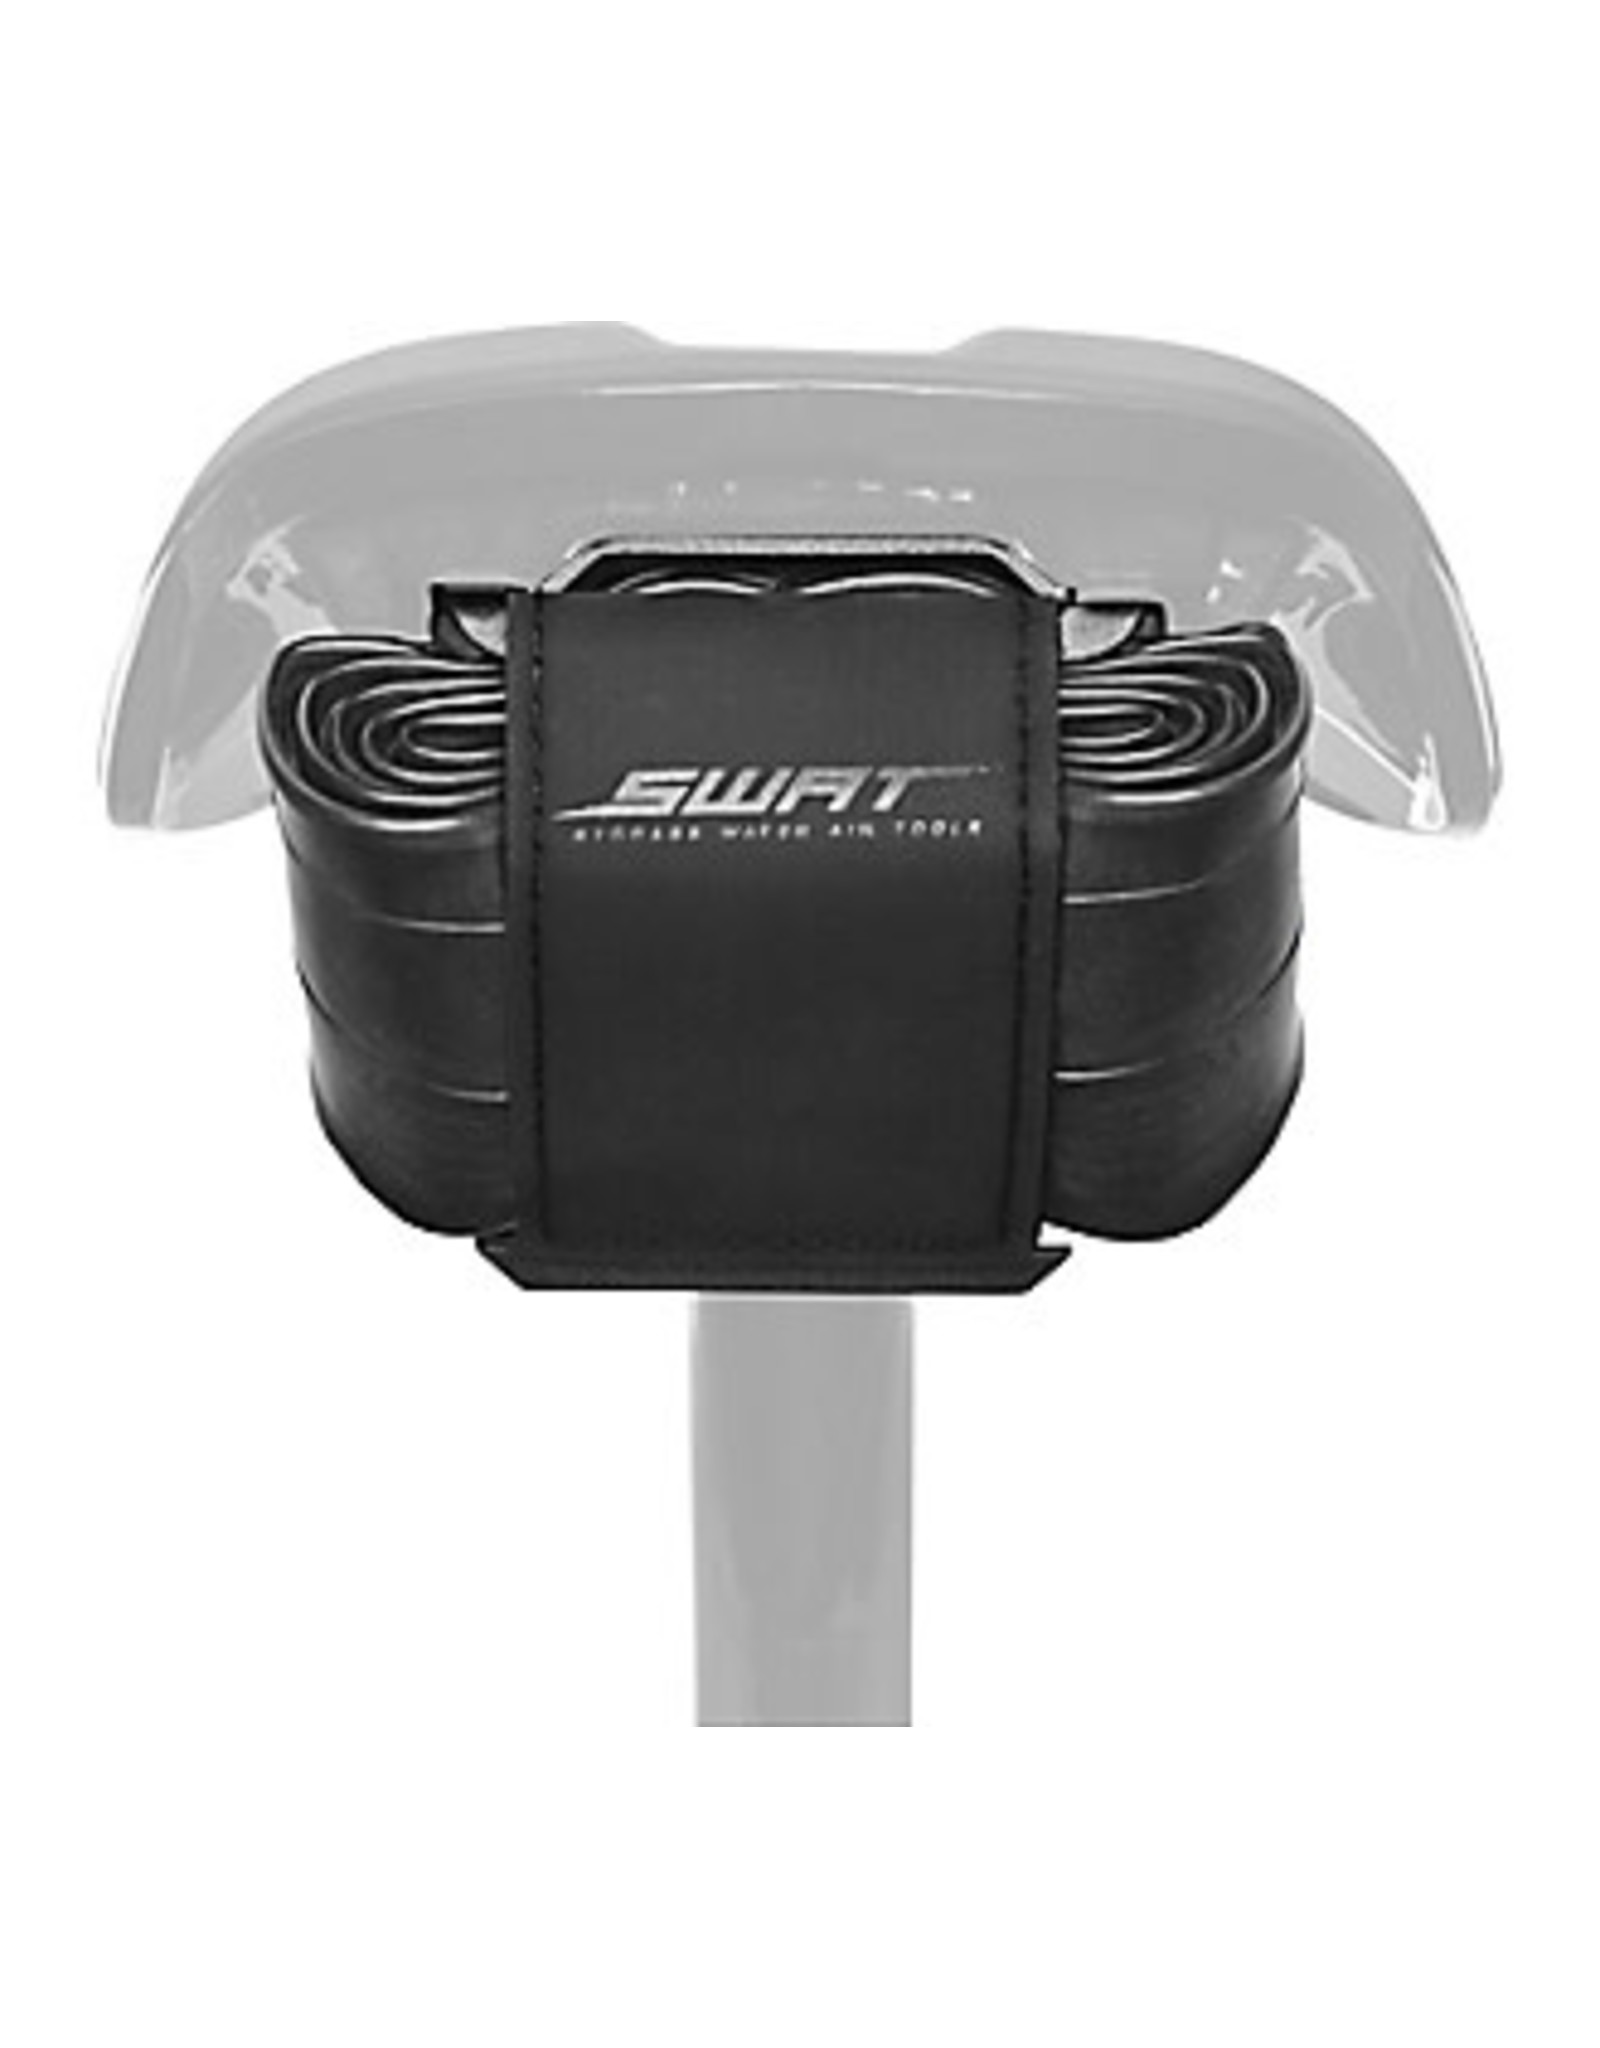 Specialized MTN BANDIT STRAP - TUBE STORAGE One Size